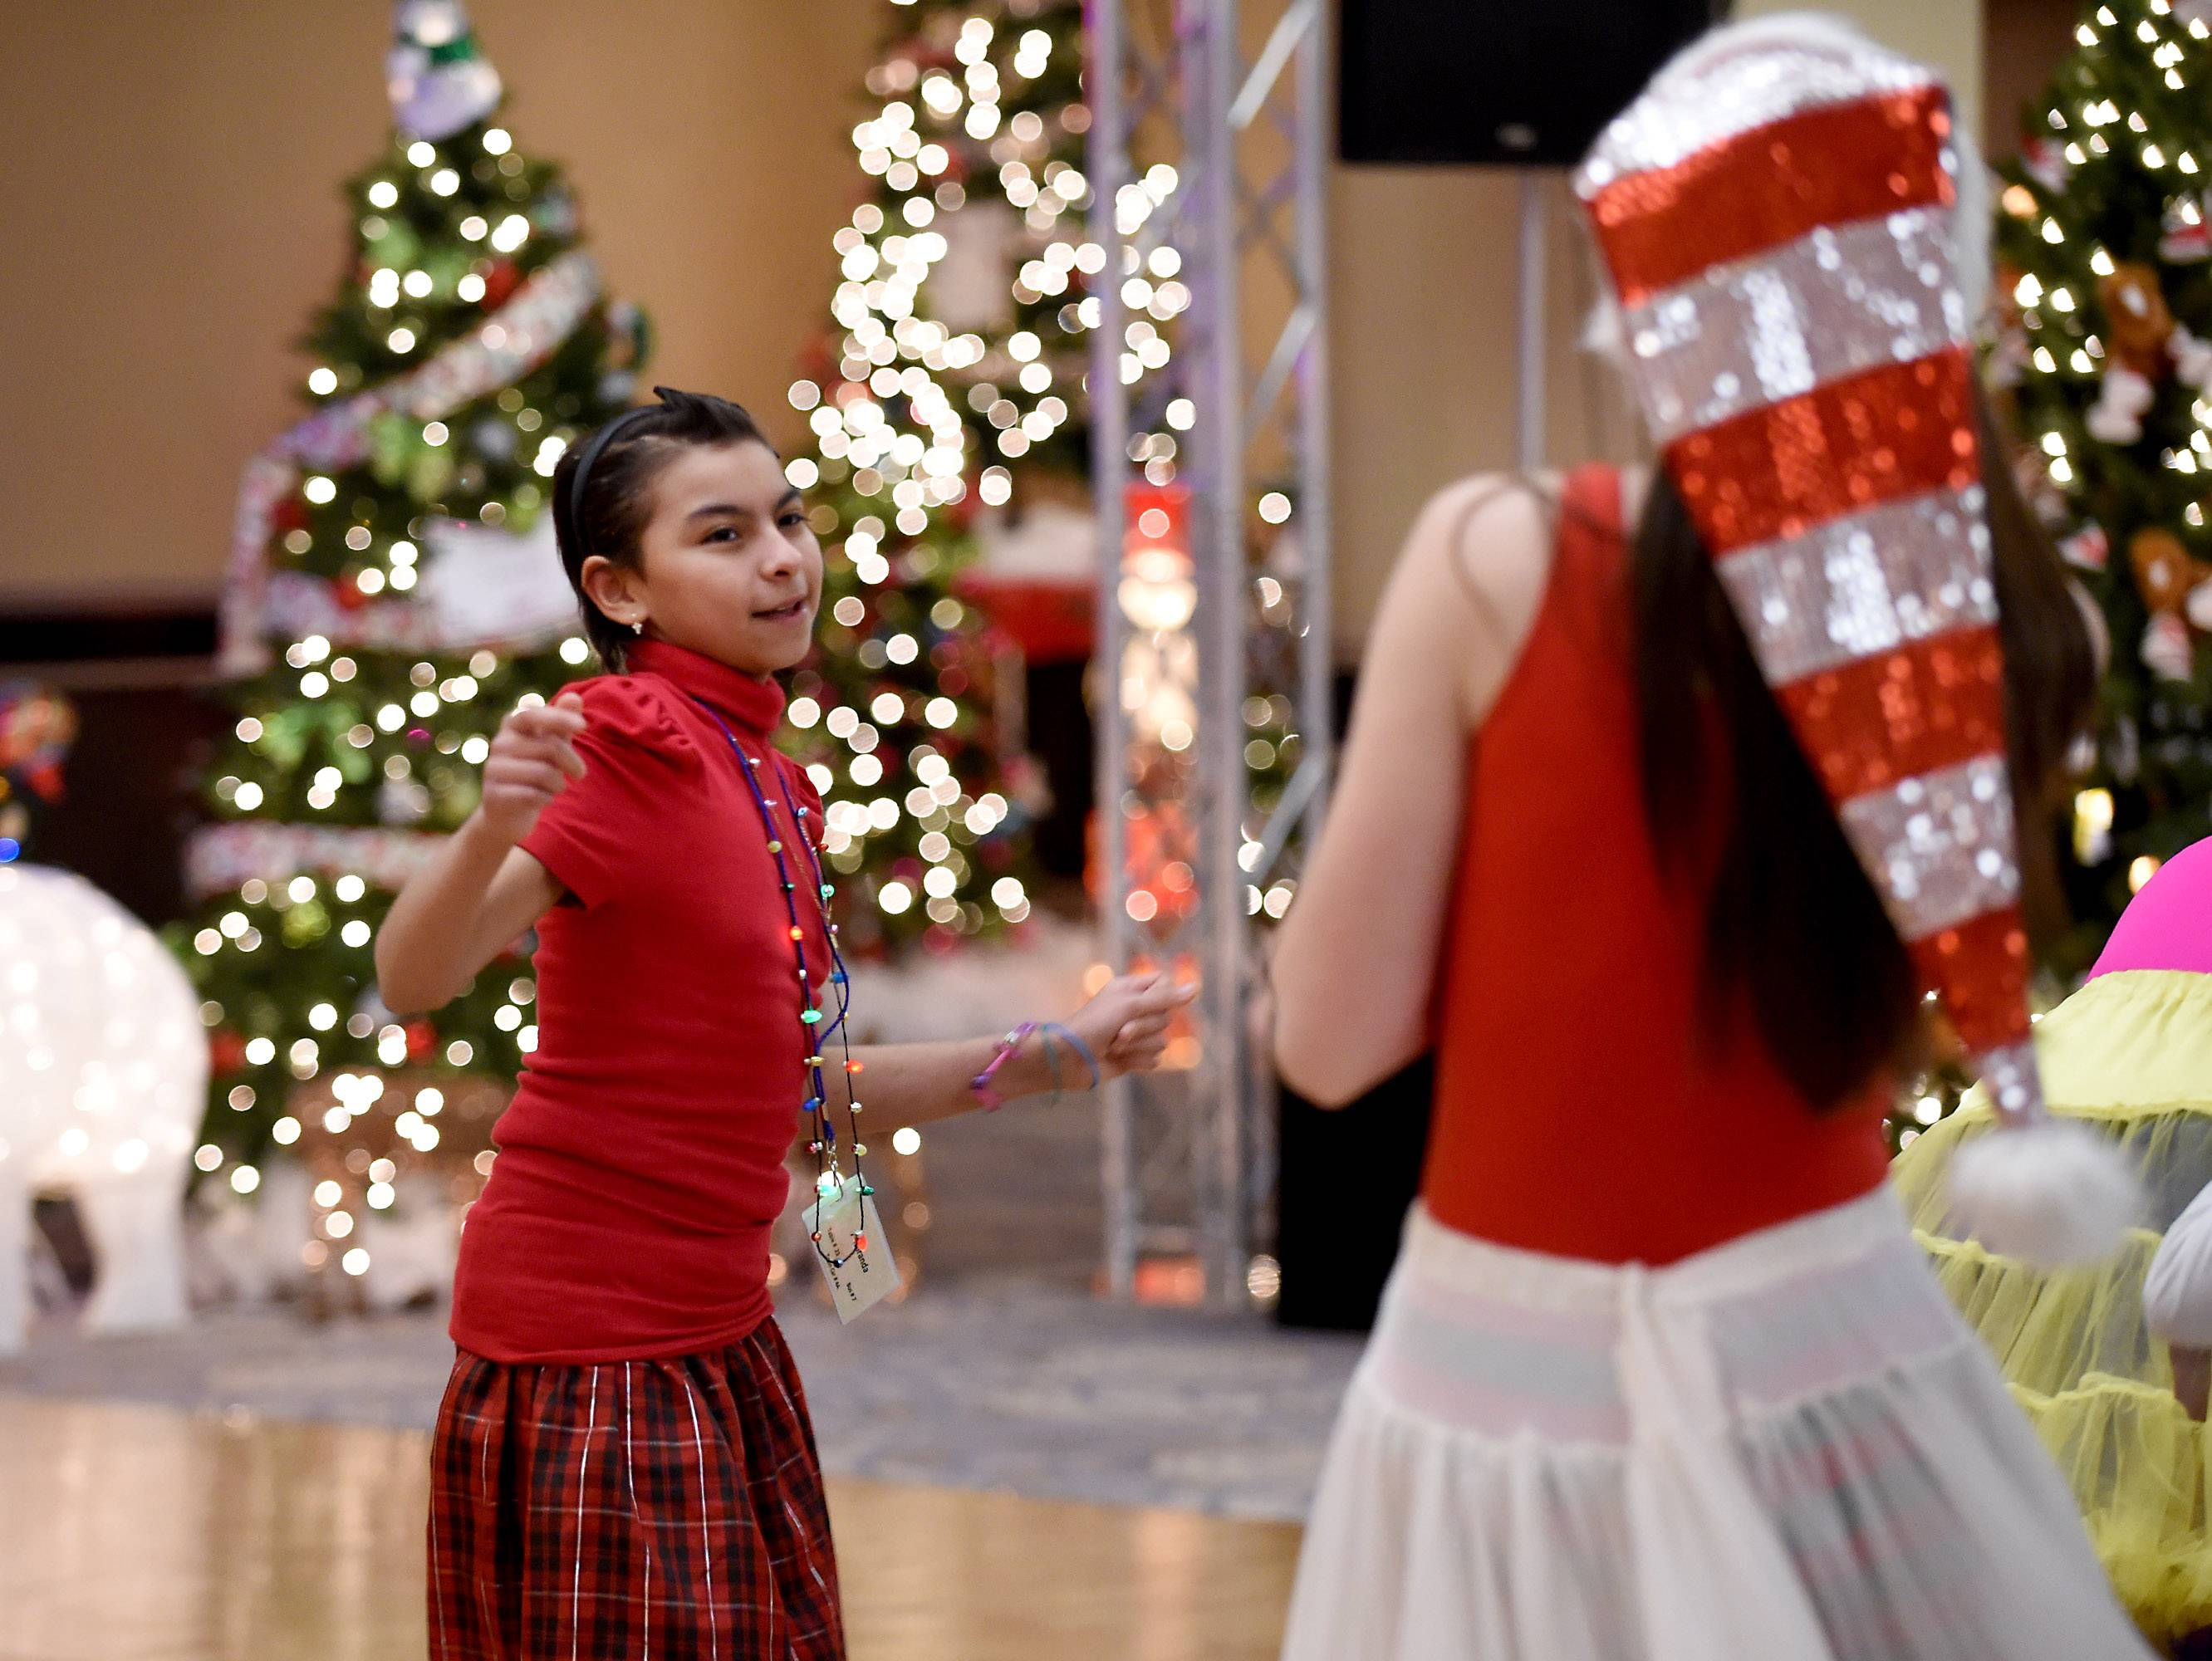 Miranda Cervantes 9, of Cicero, gets out of her wheelchair to dance at the annual Operation North Pole Christmas Party for seriously ill children and their families Saturday at the Donald E. Stephens Convention Center in Rosemont.